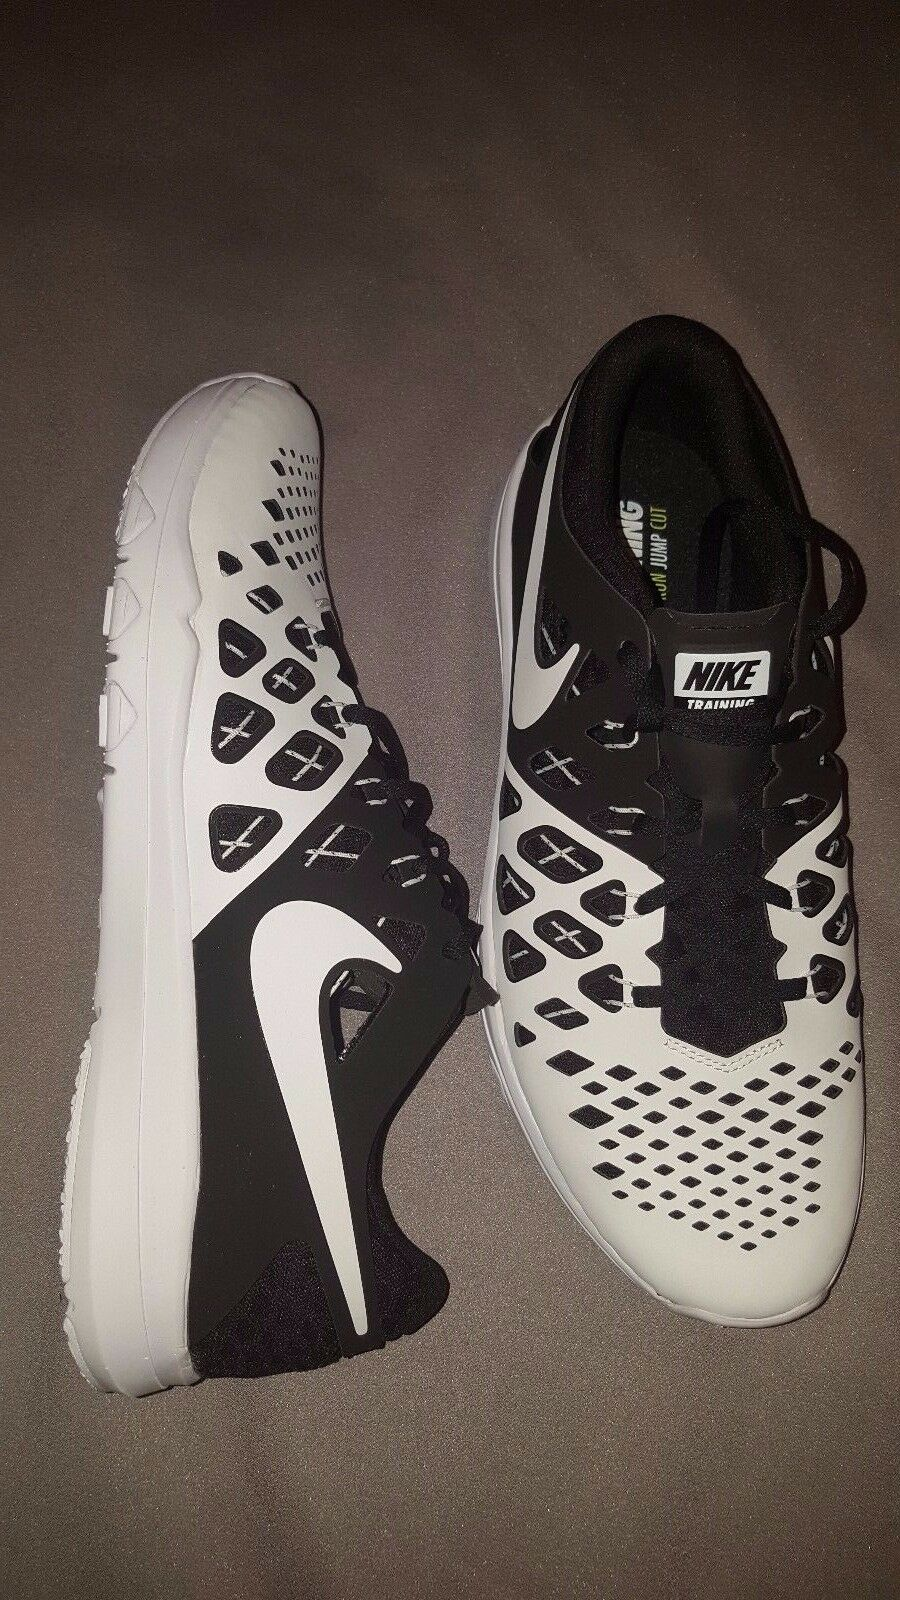 NIKE TRAIN SPEED 4 TB TRAINING Chaussures Hommes US SIZE 13 Noir blanc NEW 833259 011